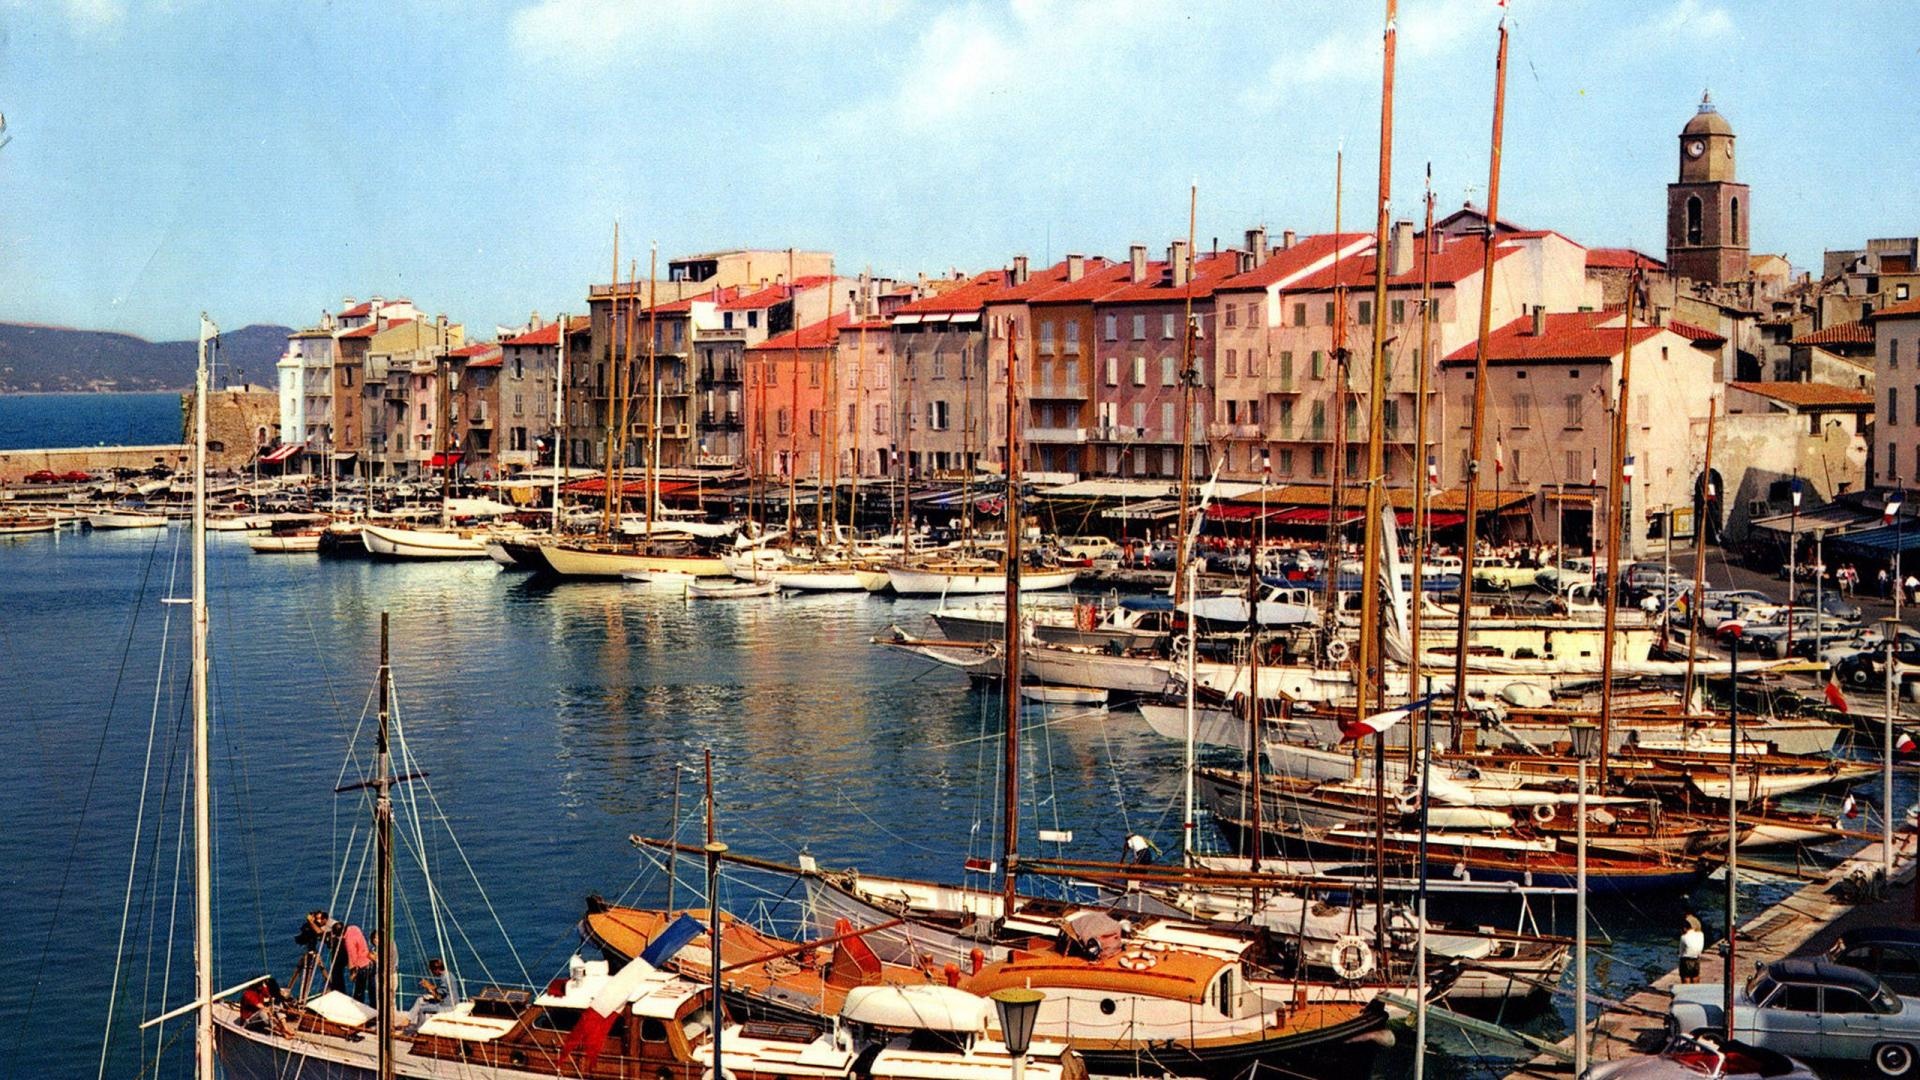 harbor-marina-in-st-tropez-france-296575